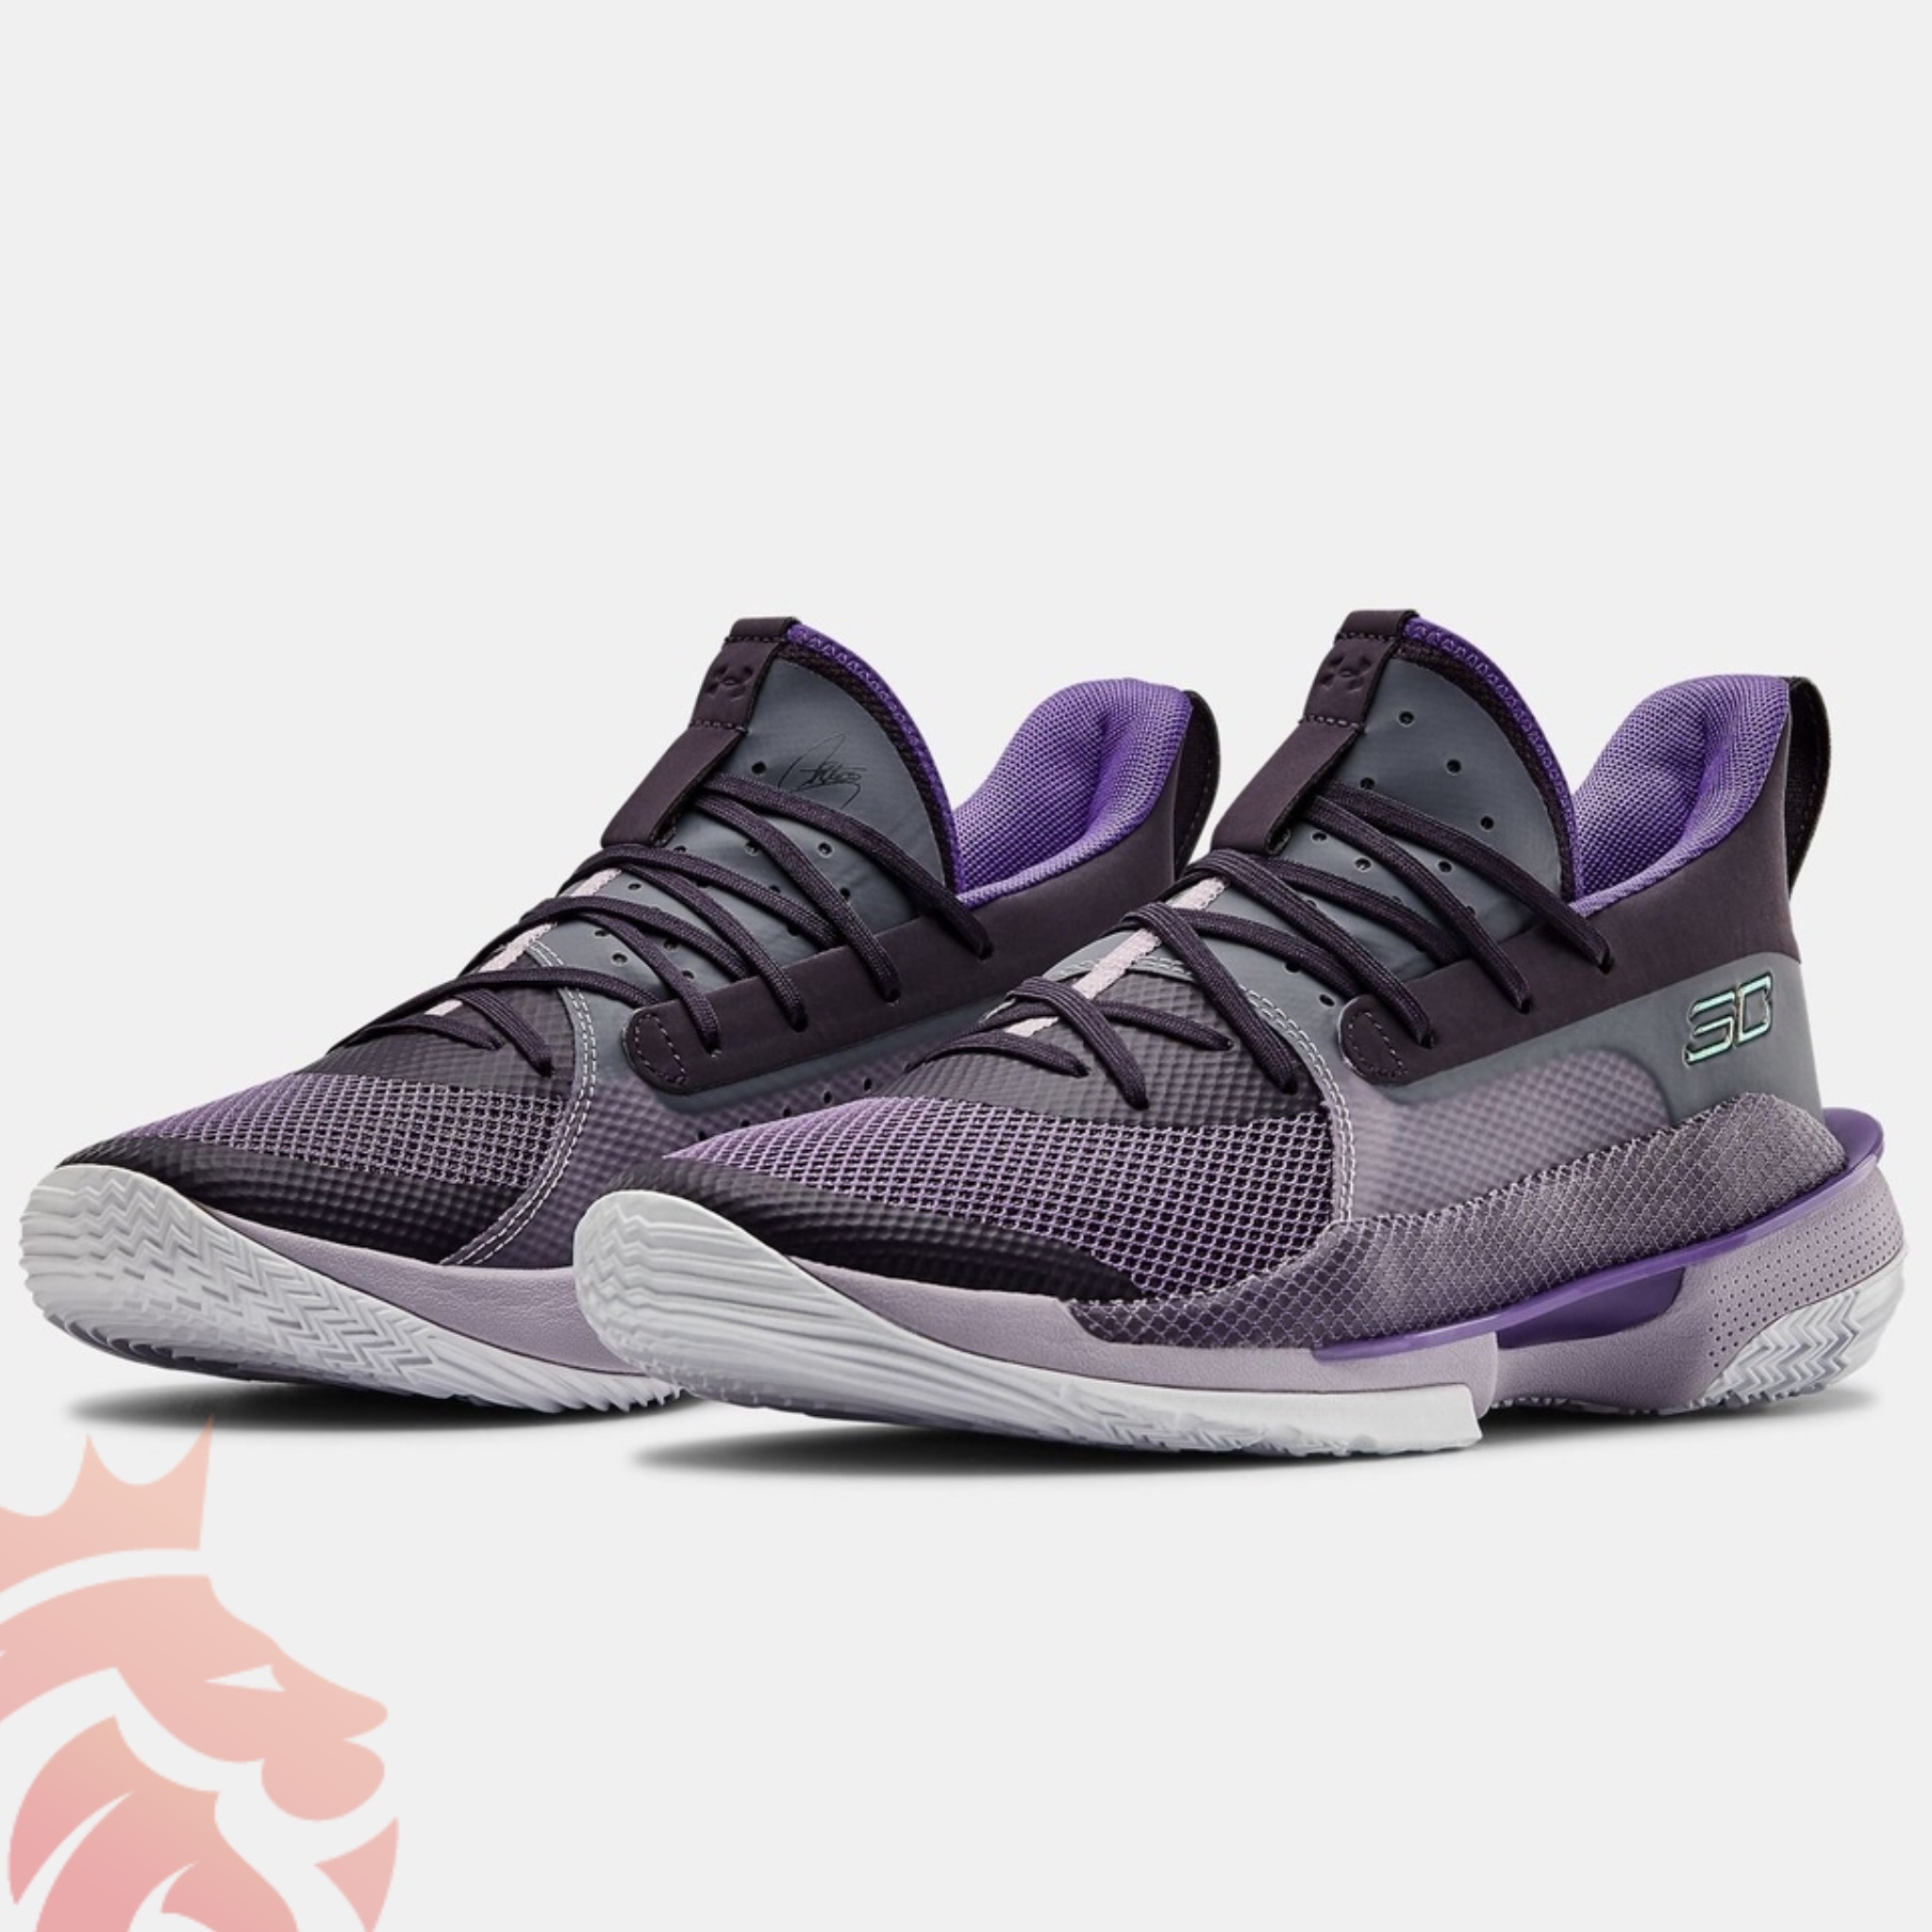 Under Armour Curry 7 International Women's Day